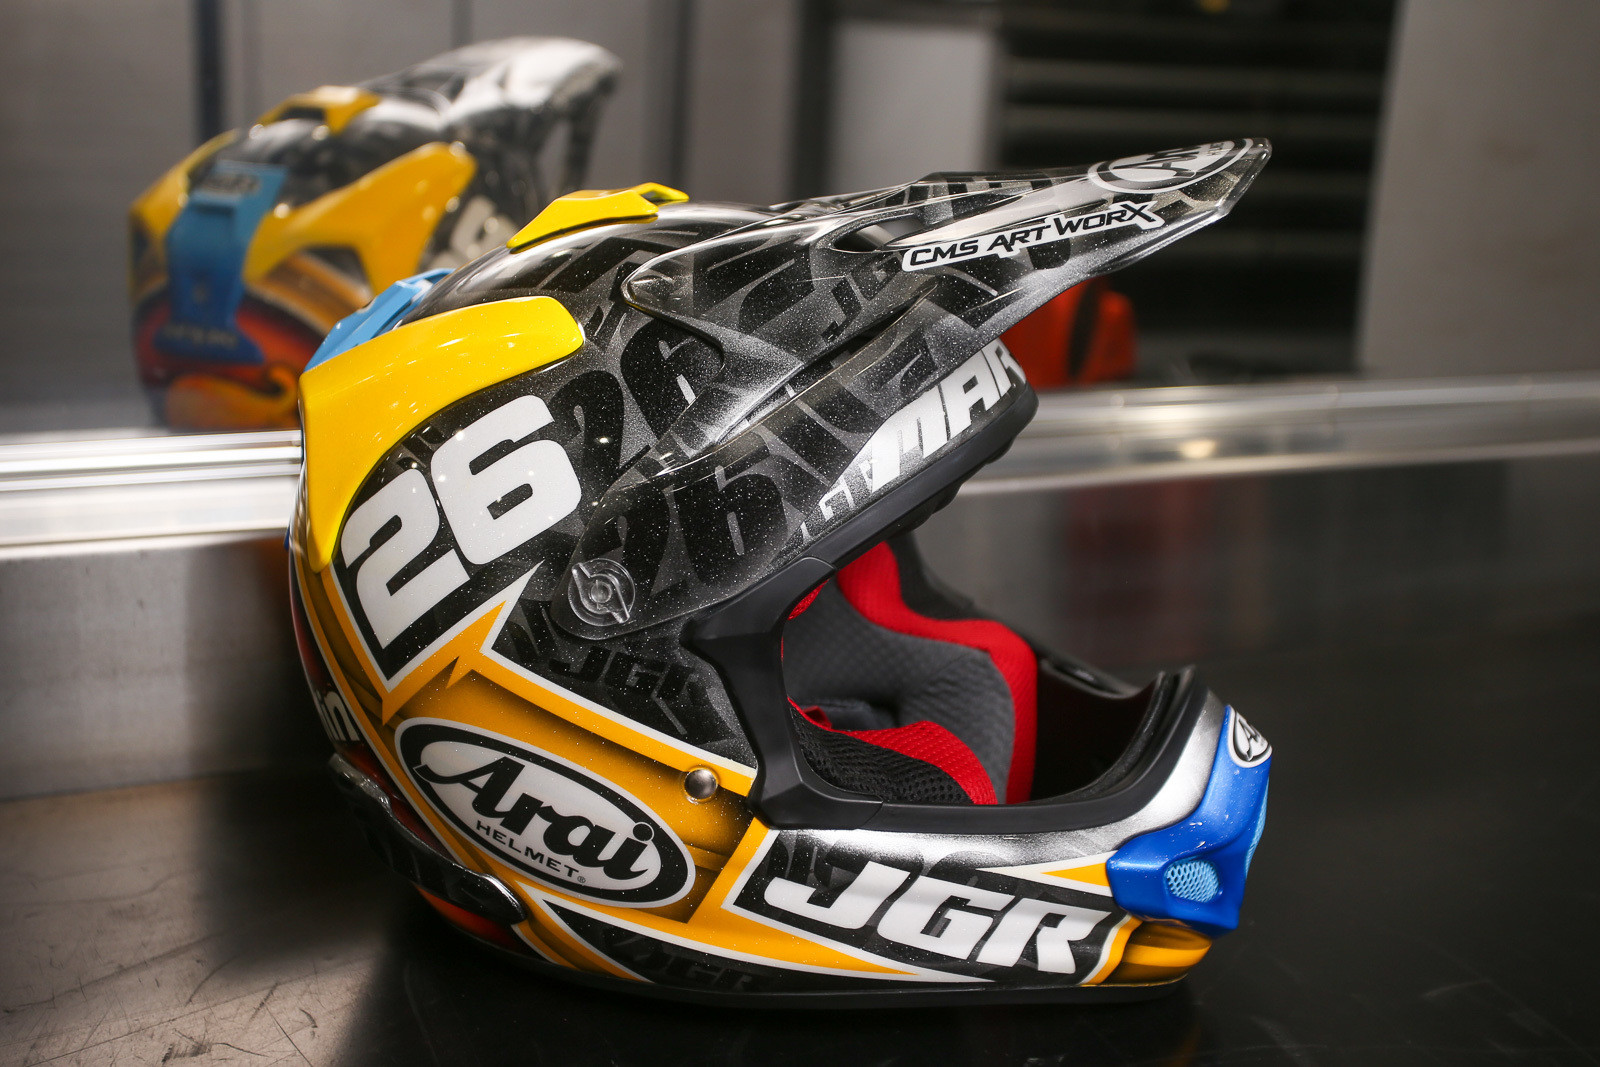 A couple weeks ago we showed you a new custom-painted Arain for Alex Martin. Unfortunately, crashes happen, and he now has a shiny new custom replacement.